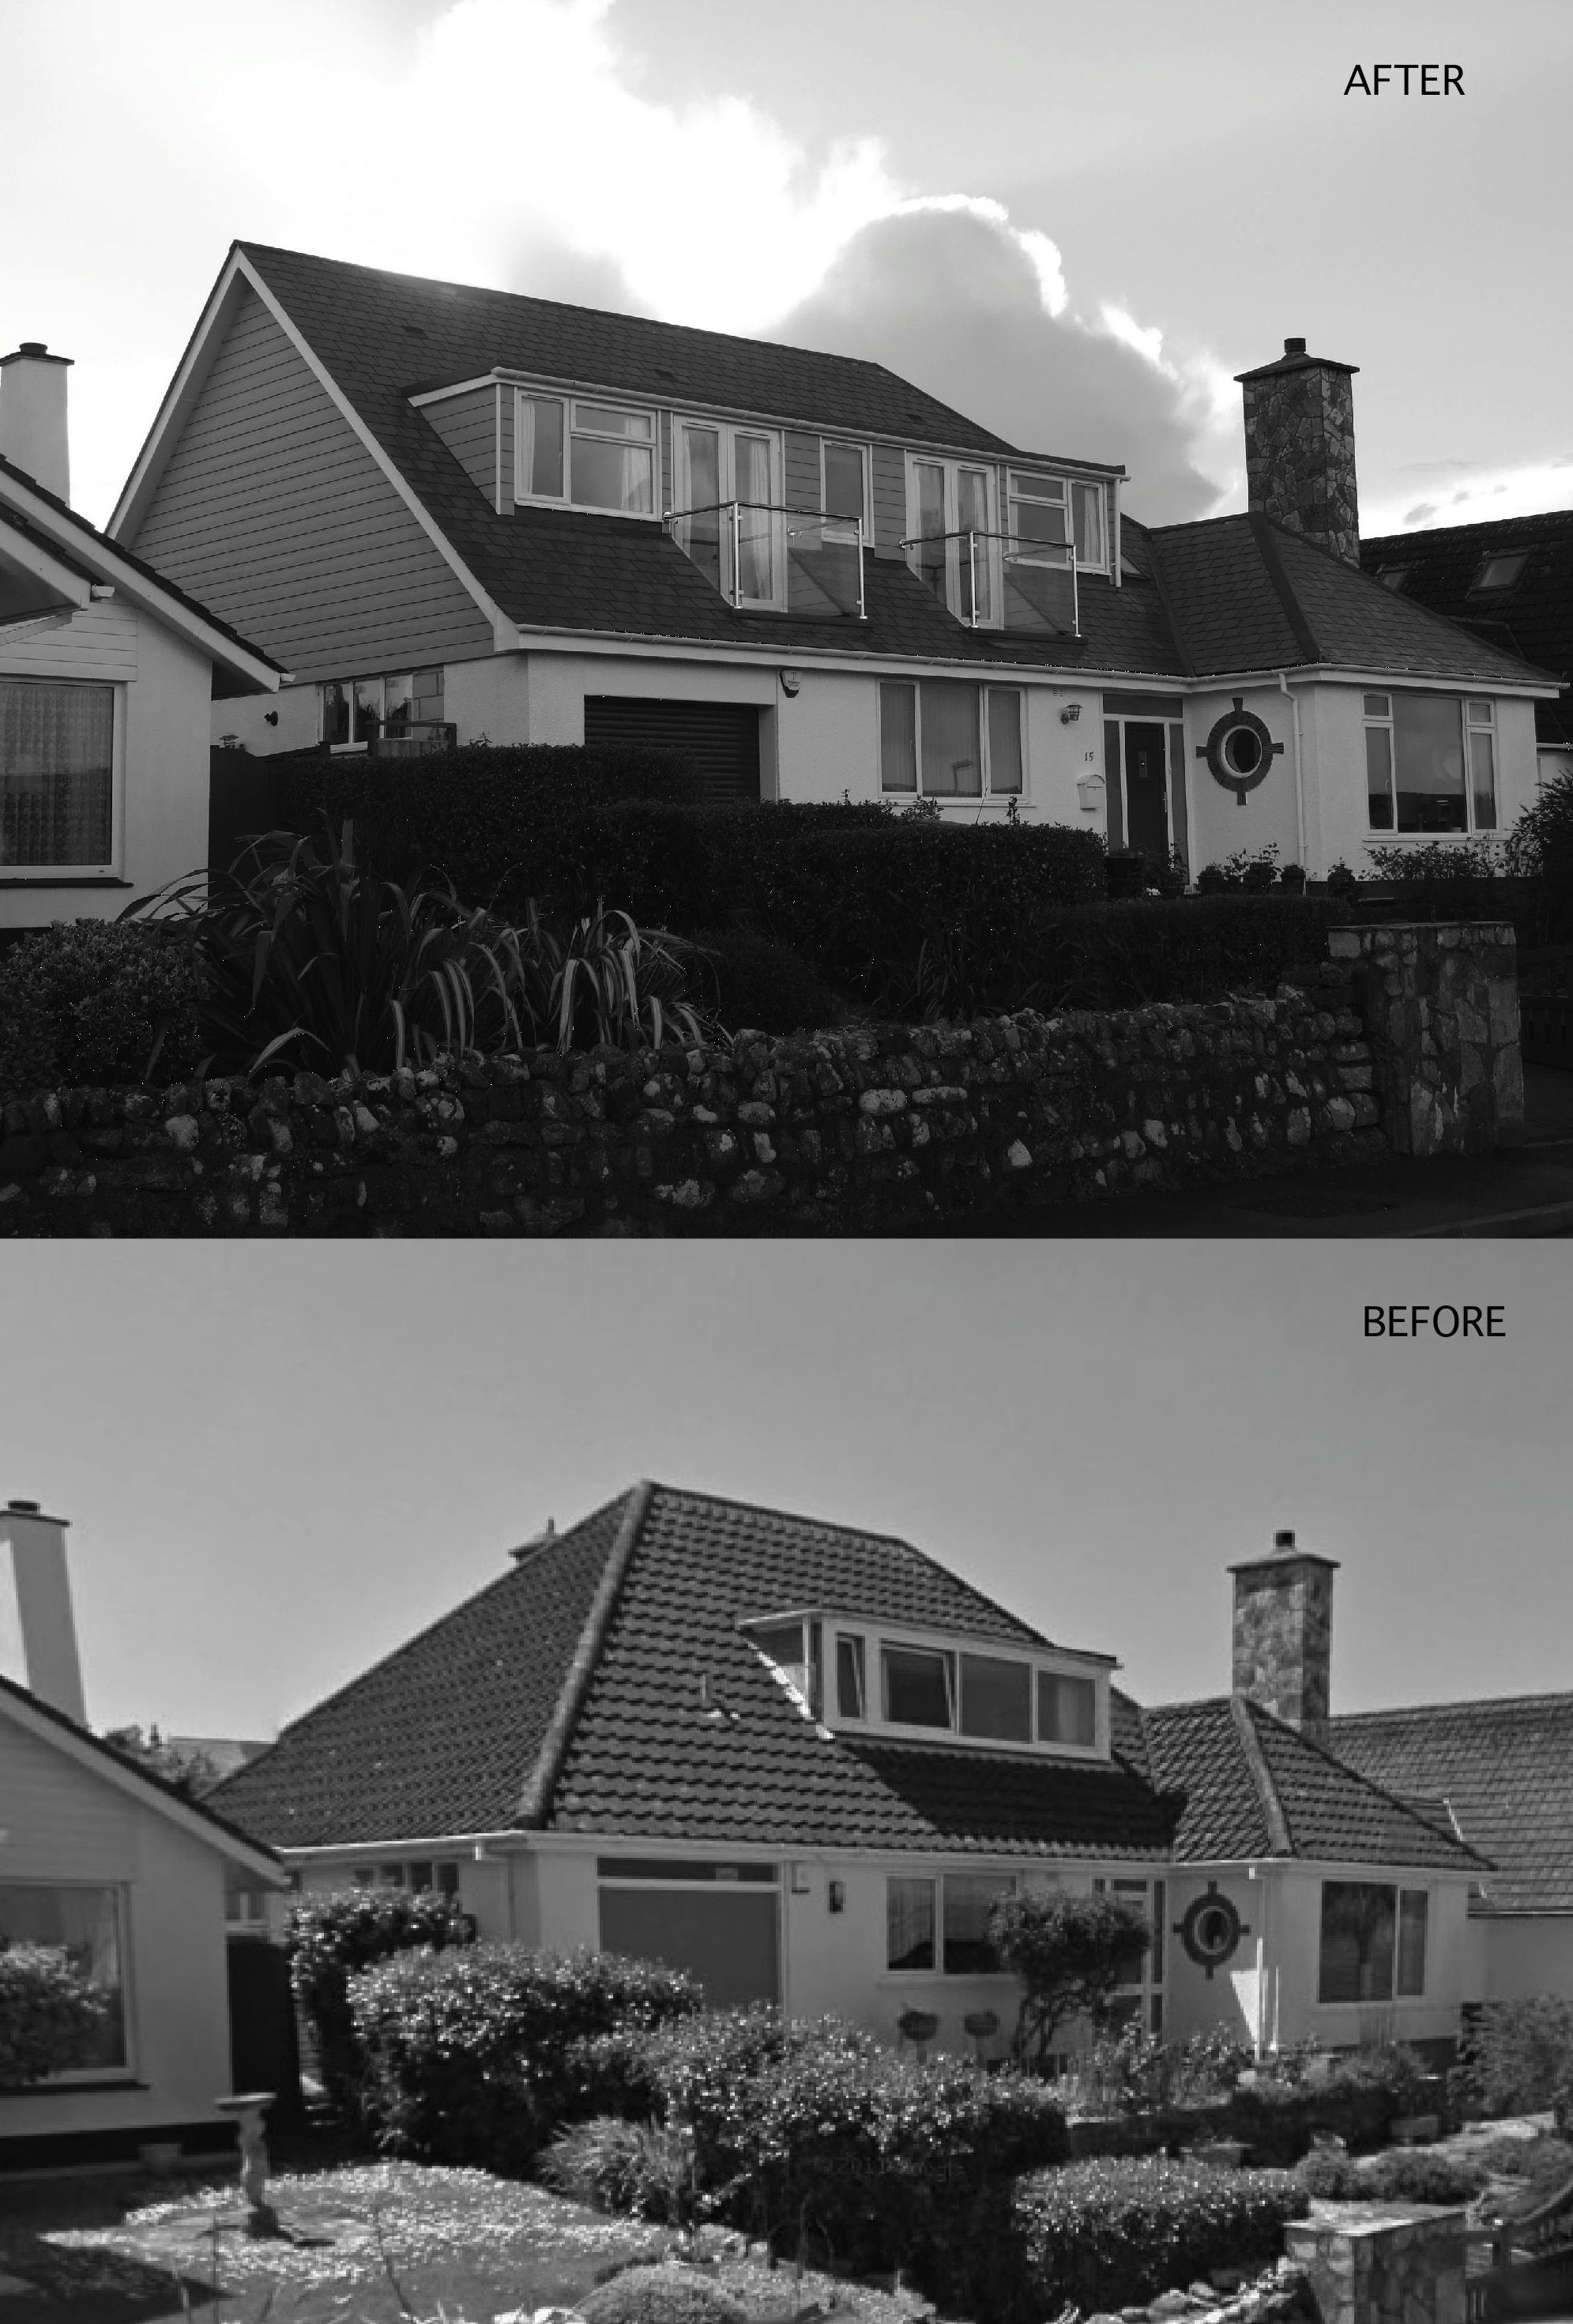 Roof Extension By Replacing Hipped End With Gable And Enlarging Dormers With Balconies House With Balcony Hip Roof Dormer Roof